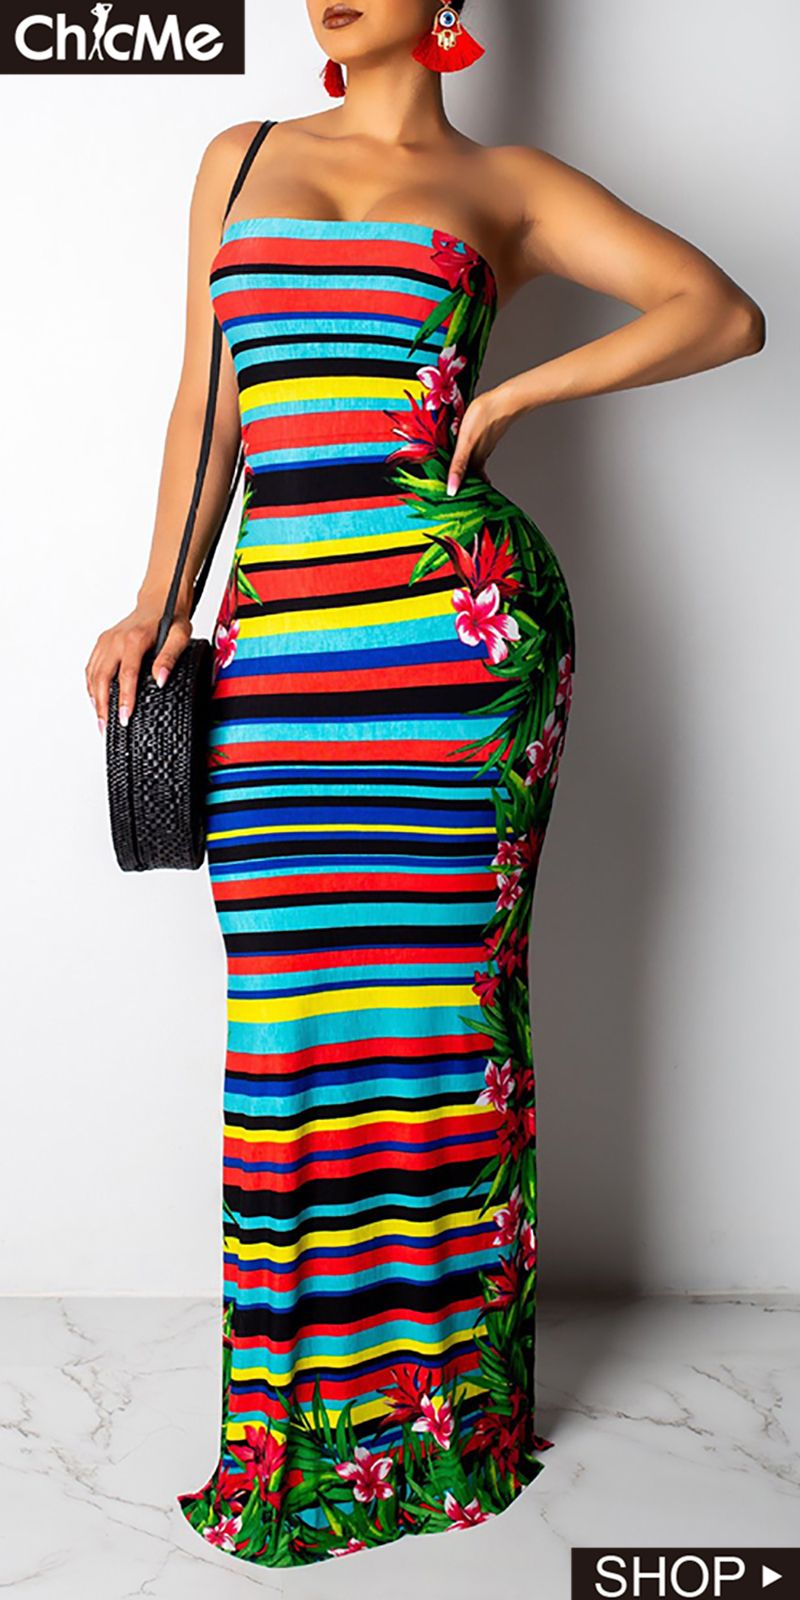 1514be50ac5a Backless Striped & Tropical Print Tube Maxi Dress | Chic Me Dress in ...